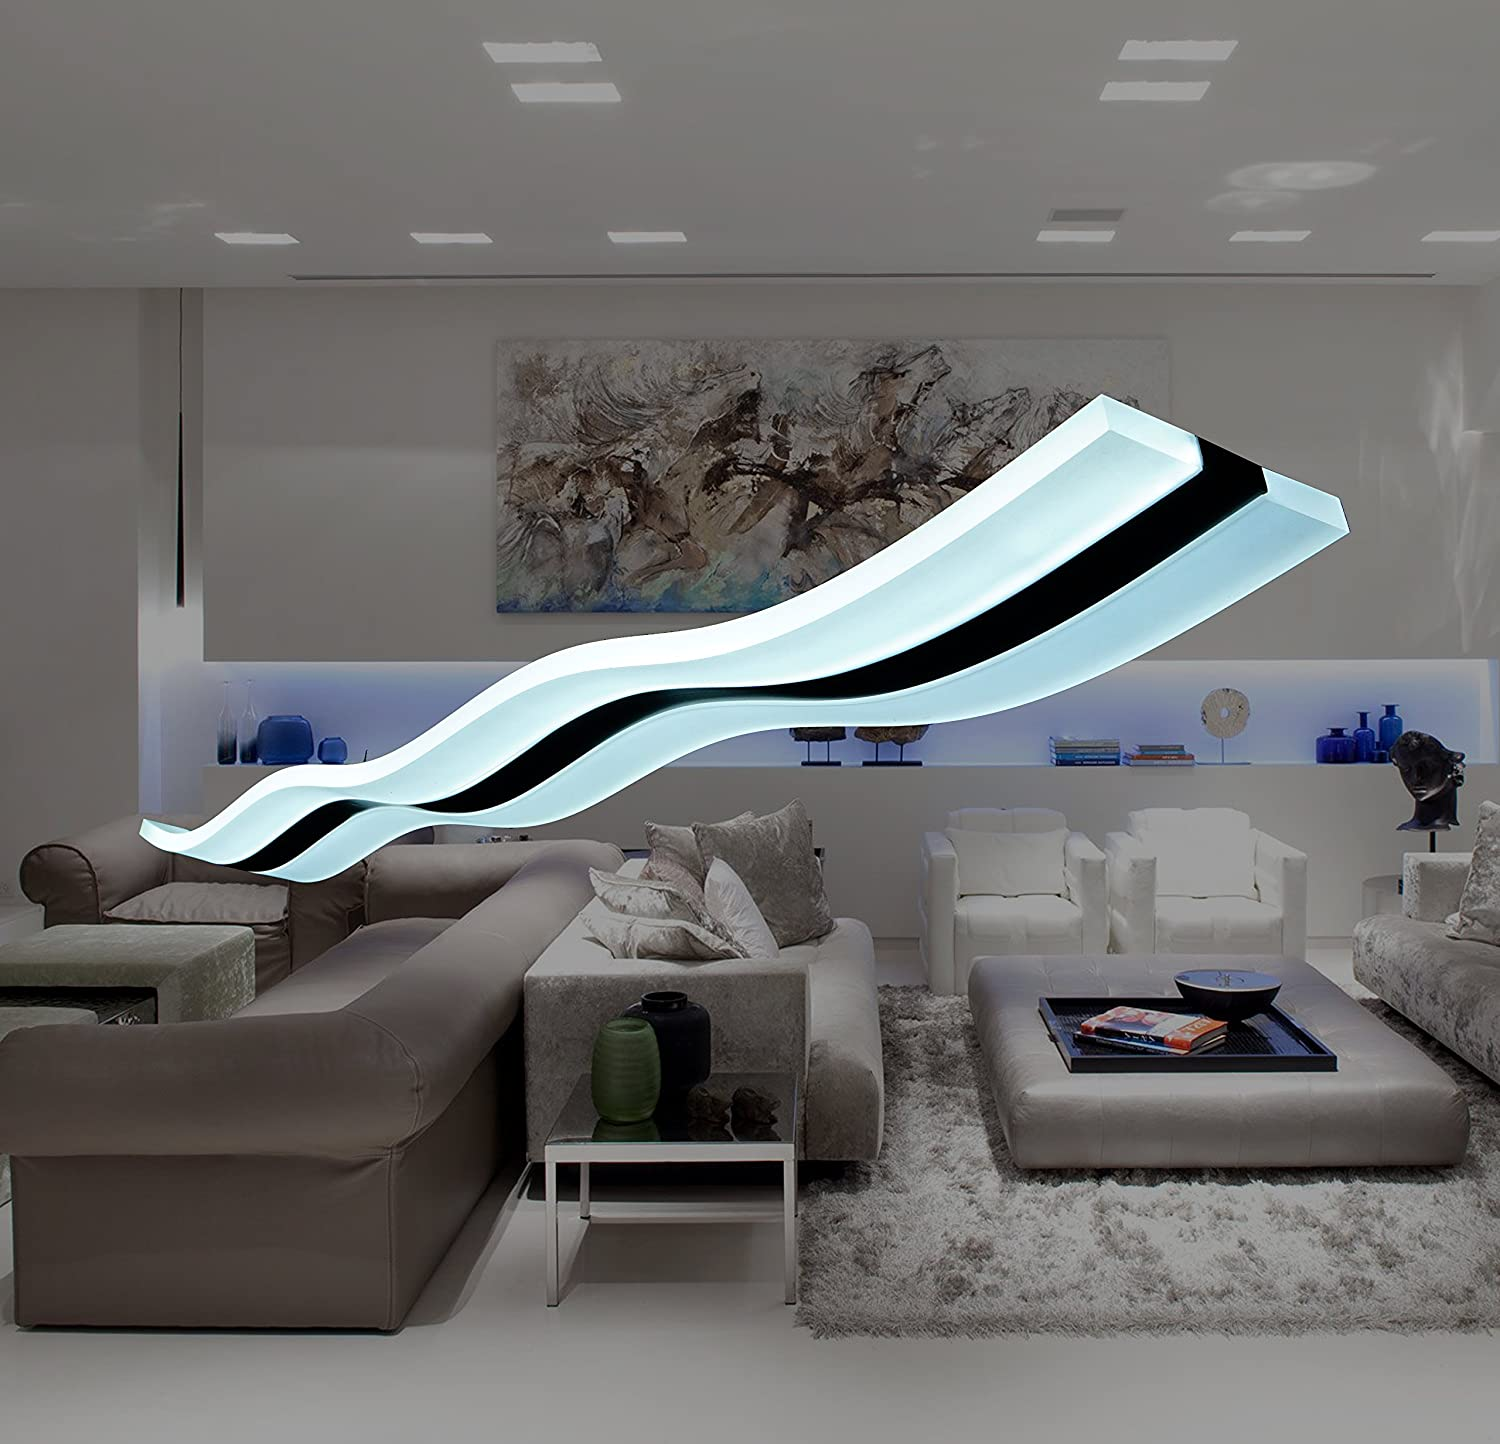 Place modern lighting wave led pendant light fixture ceiling lamp chandelier bright lighting for contemporary living room bedroom dining room kitchen home